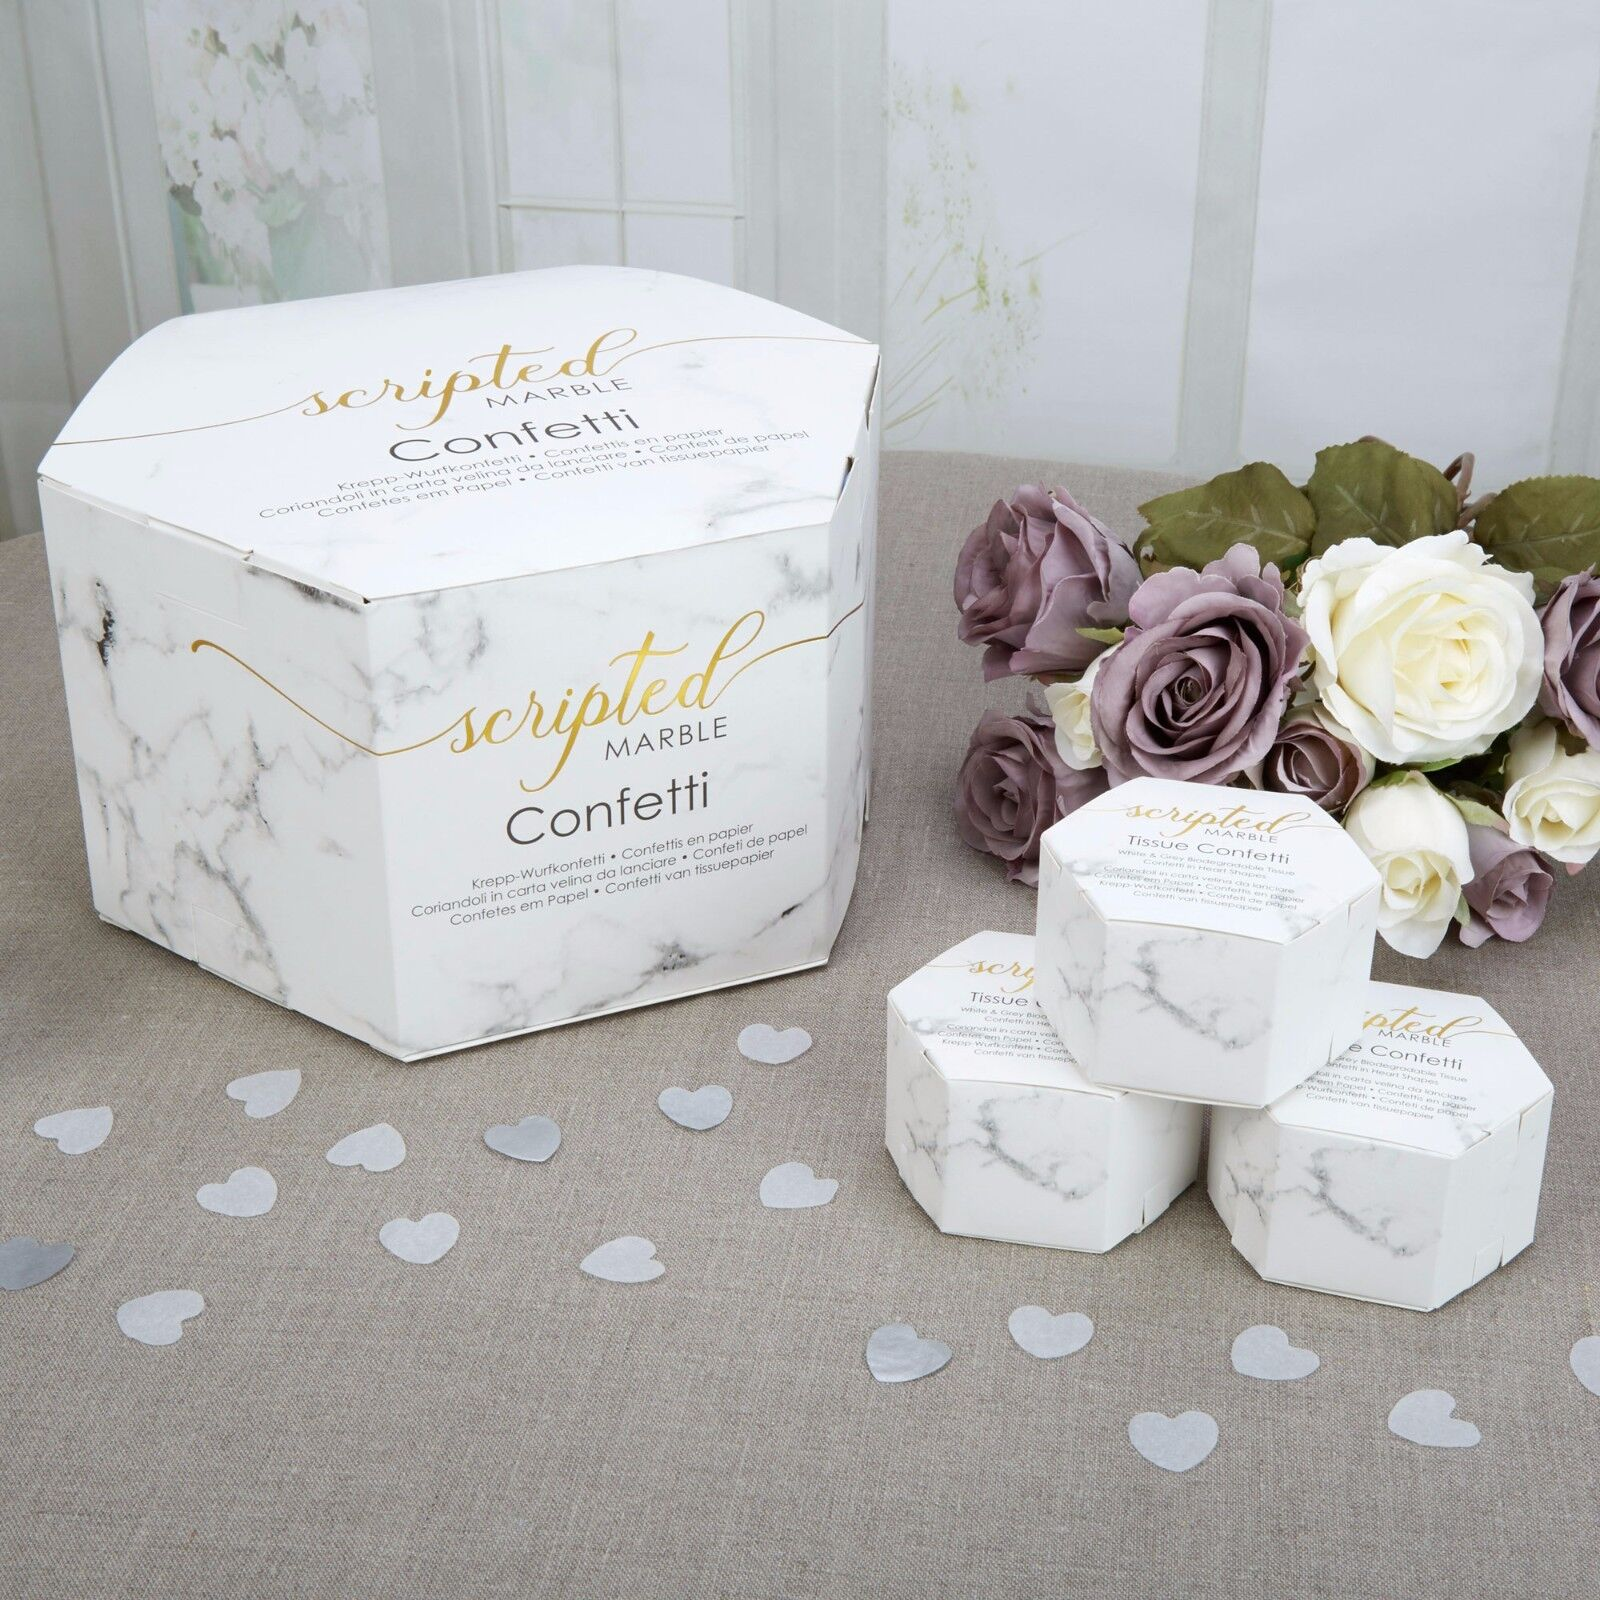 WEDDING CONFETTI Throwing Biodegradable SCRIPTED MARBLE White Silver ...